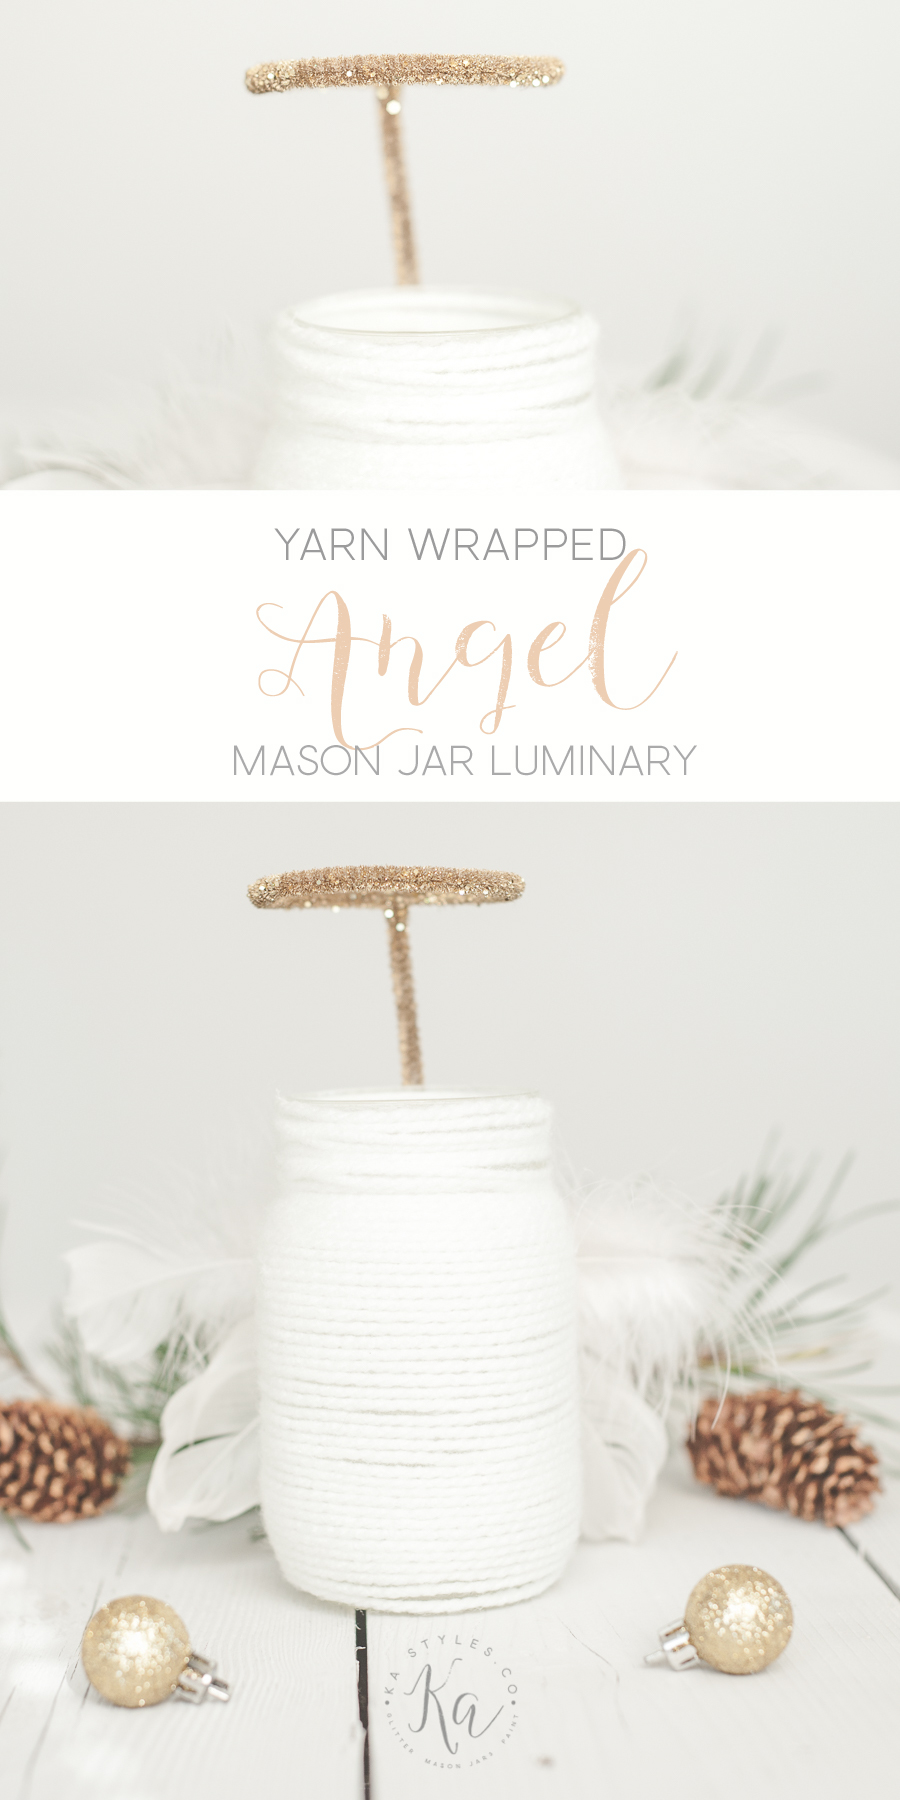 DIY Yarn wrapped Angel mason jar luminary.